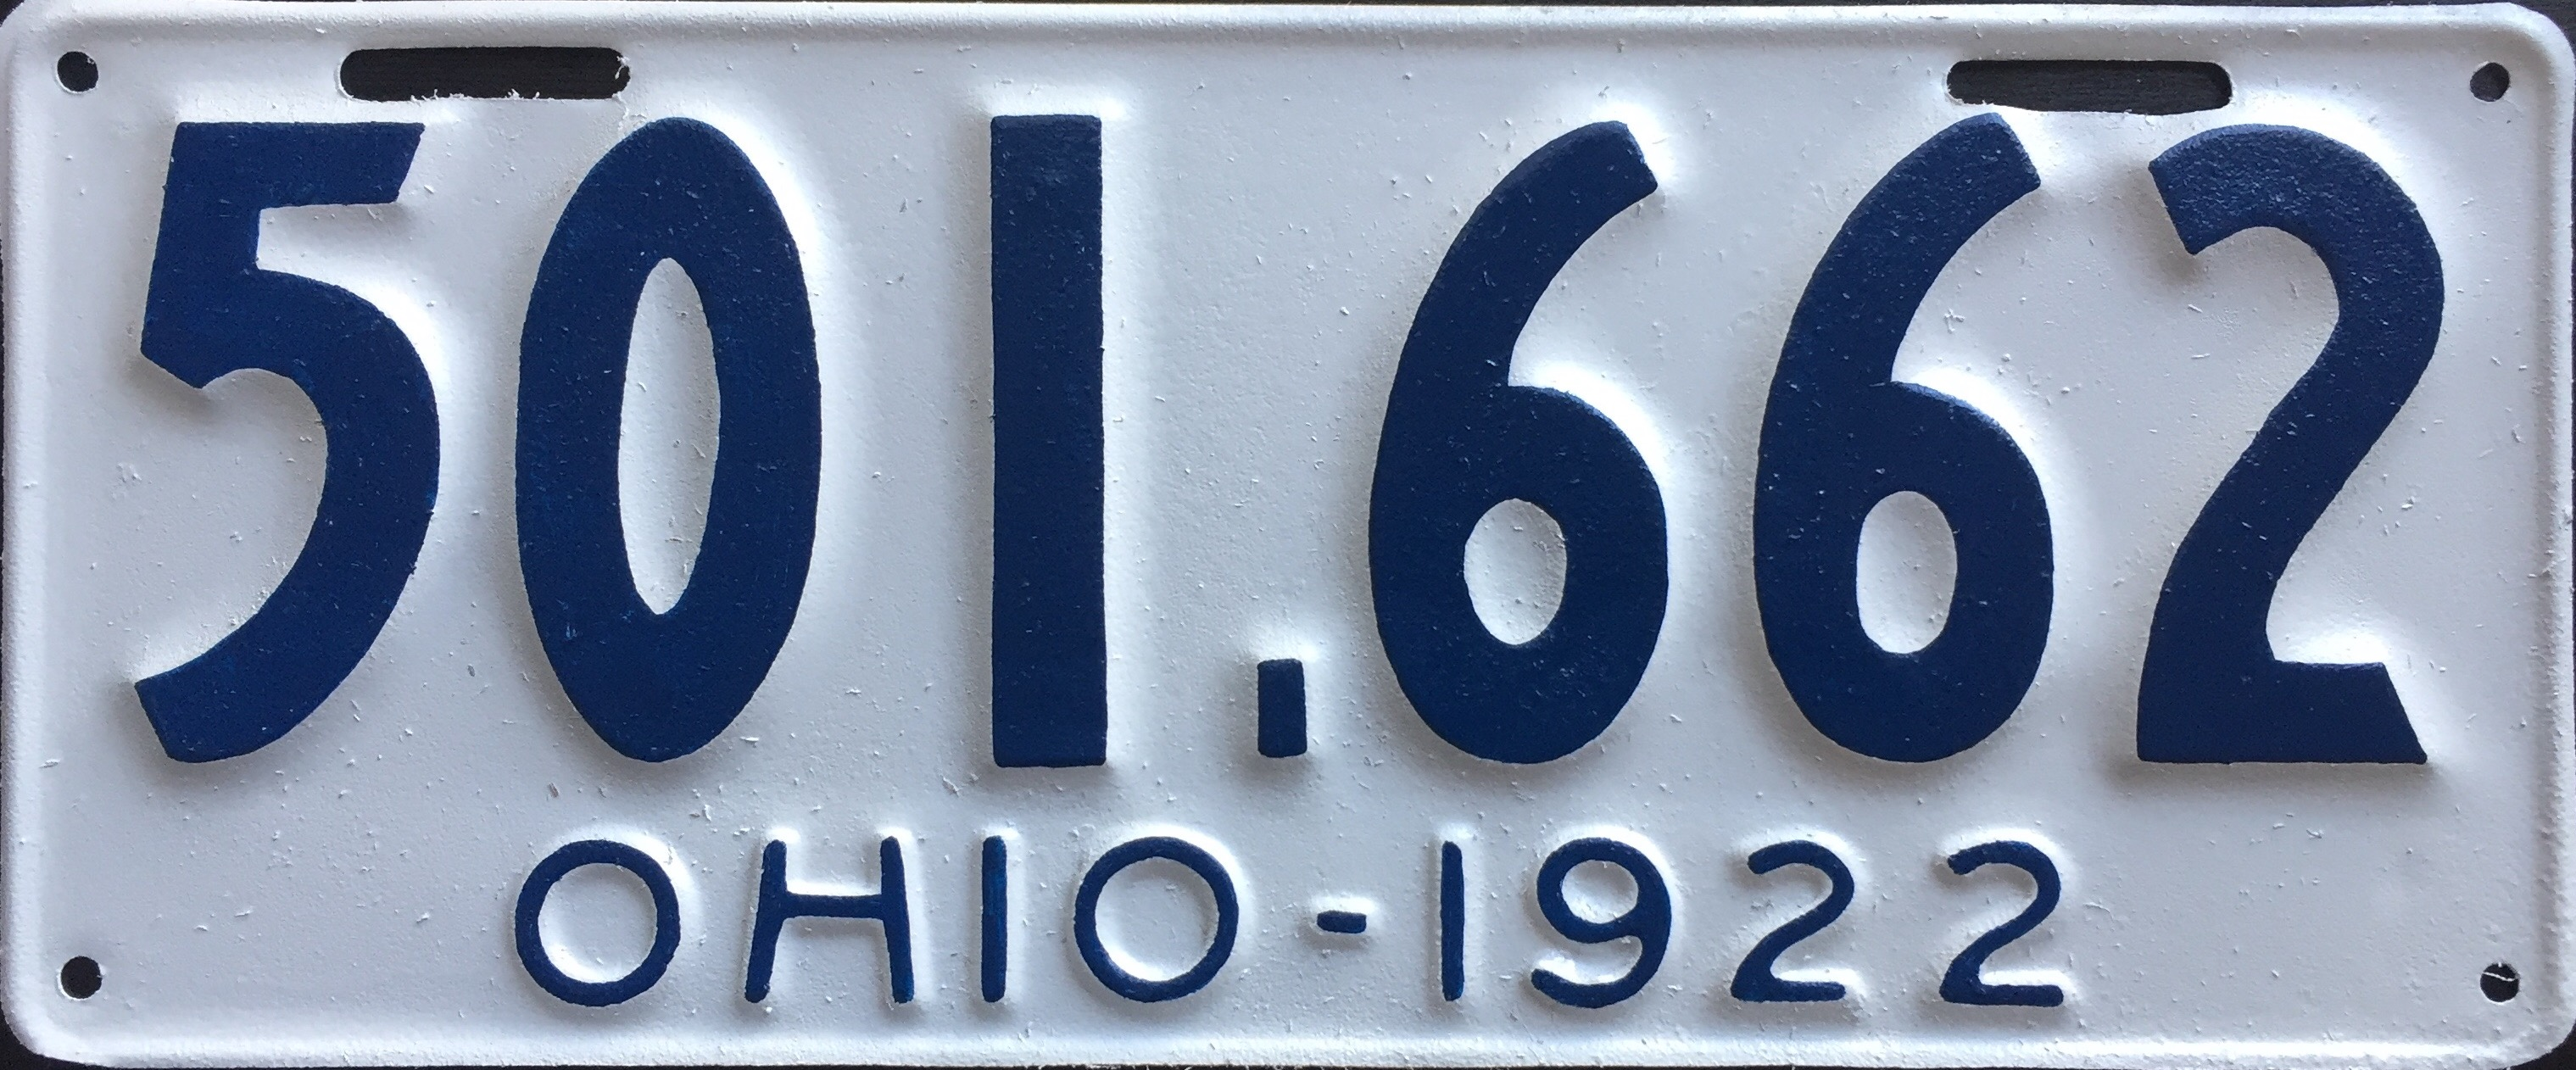 File:1922 Ohio license plate.jpg - Wikimedia Commons